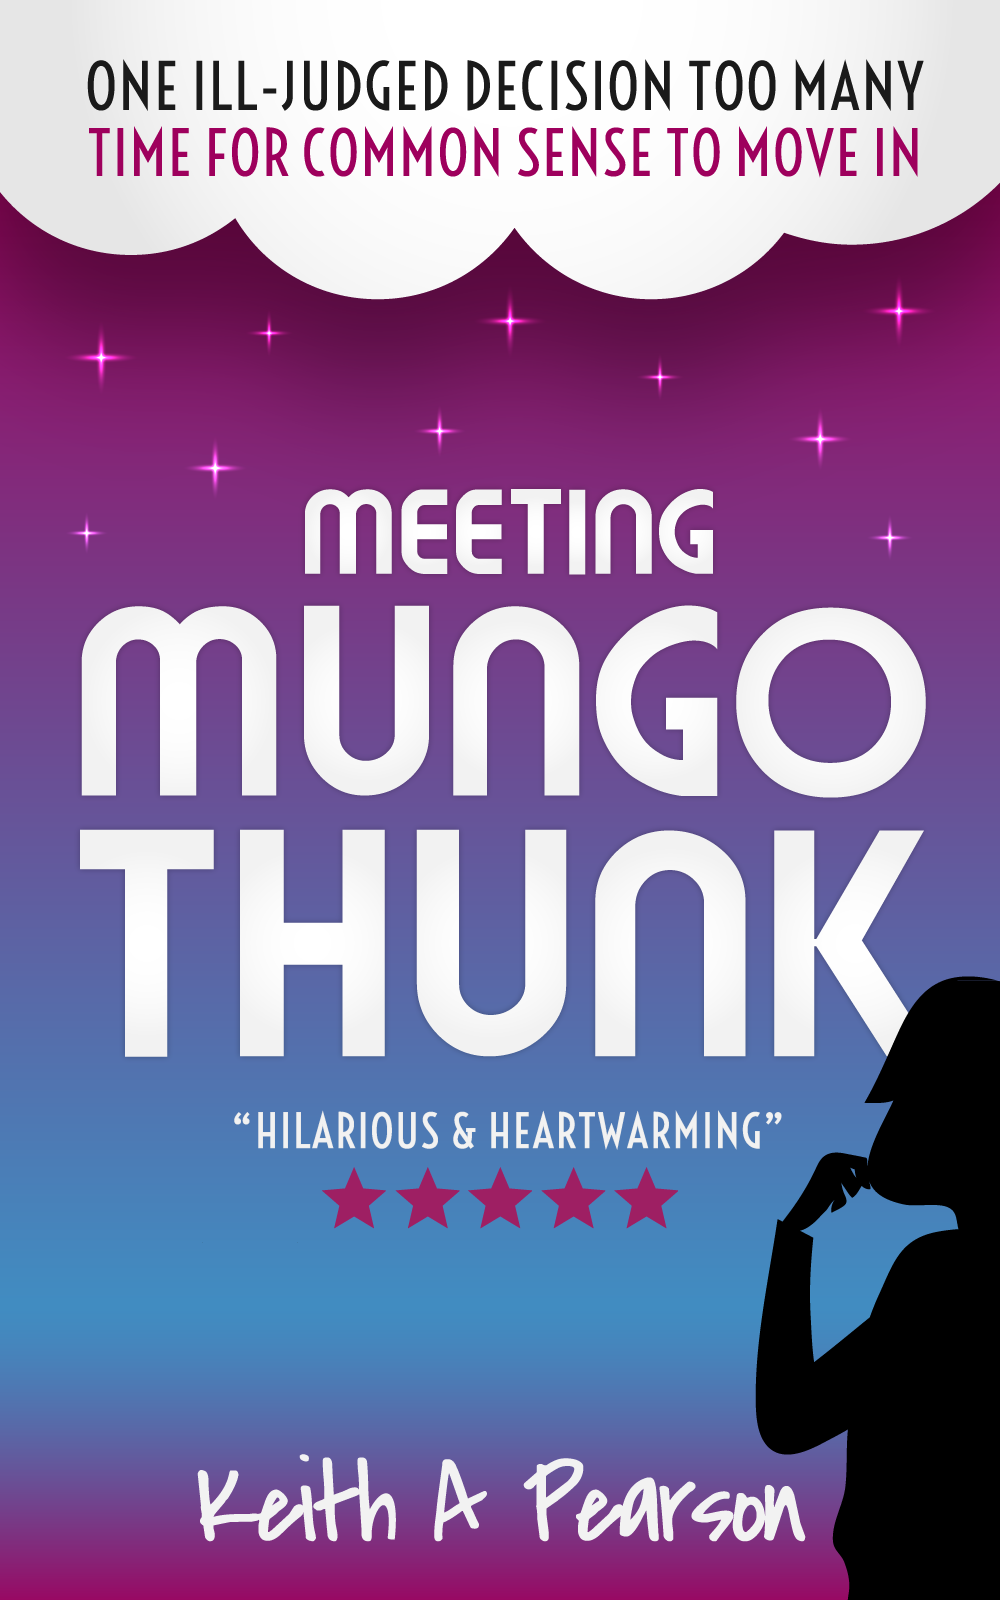 Meeting Mungo Thunk Novel by Keith A Pearson